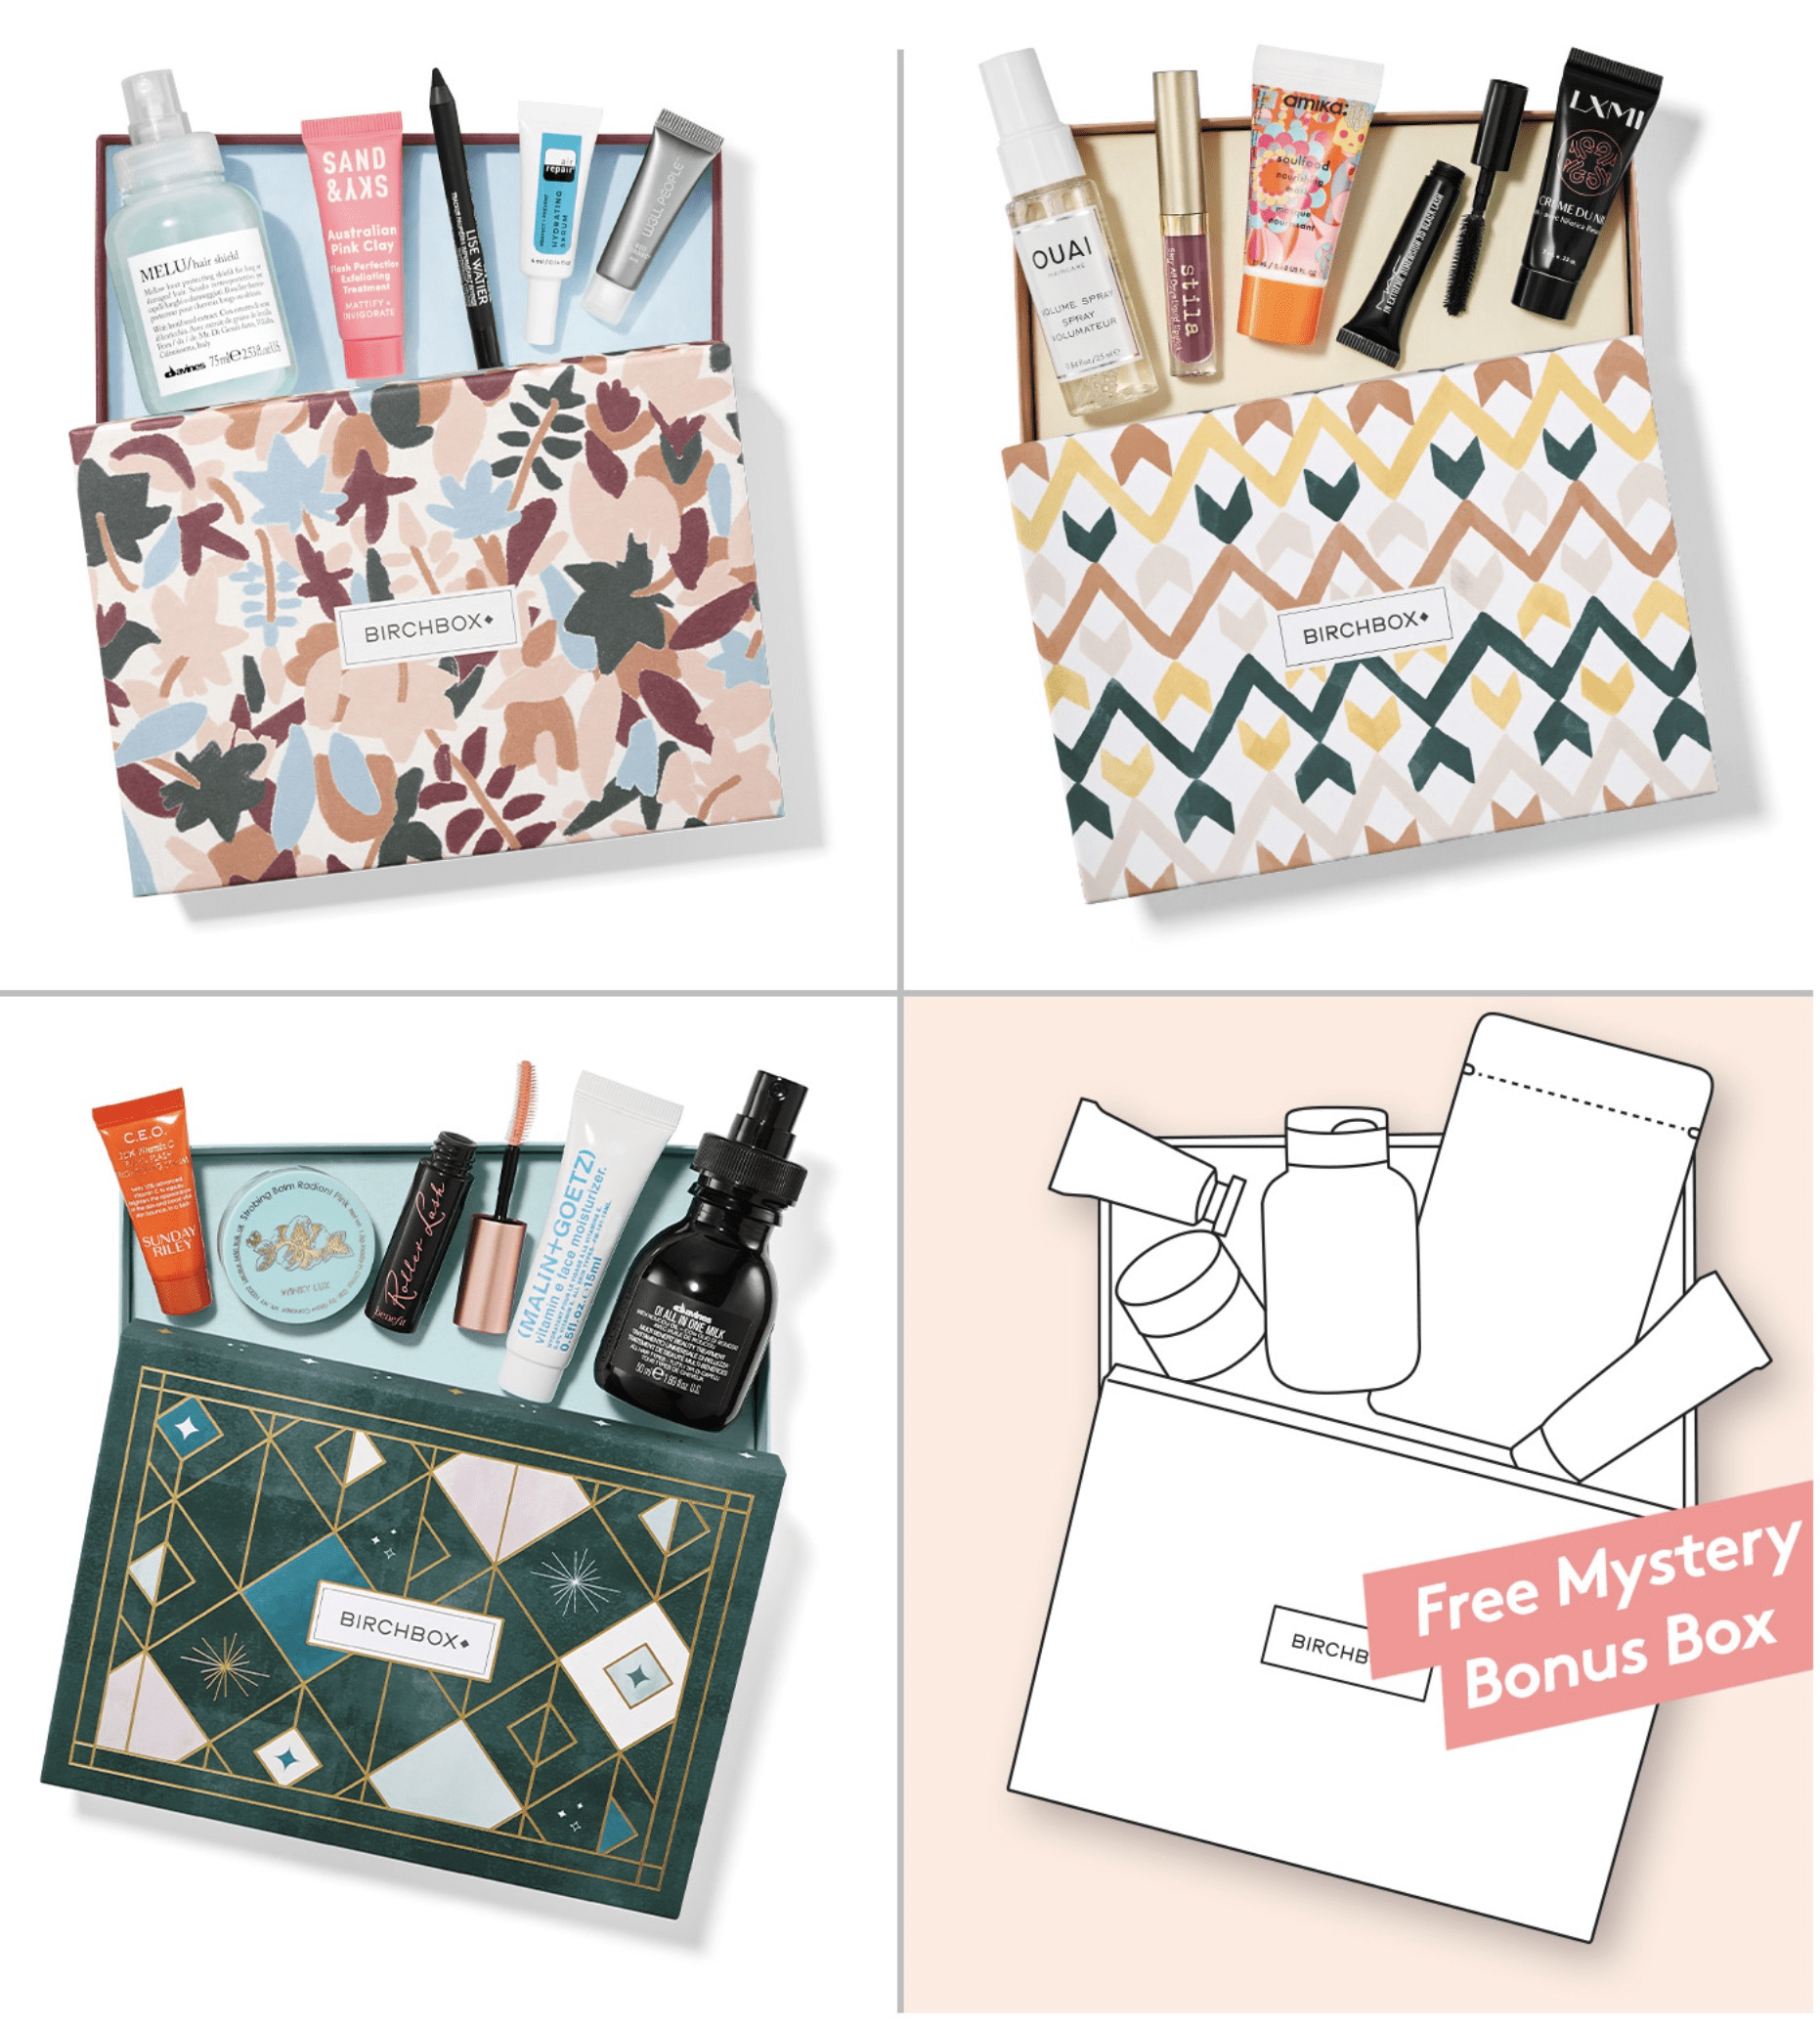 Birchbox Coupon: FREE Bonus Box with 3-Month Subscription!